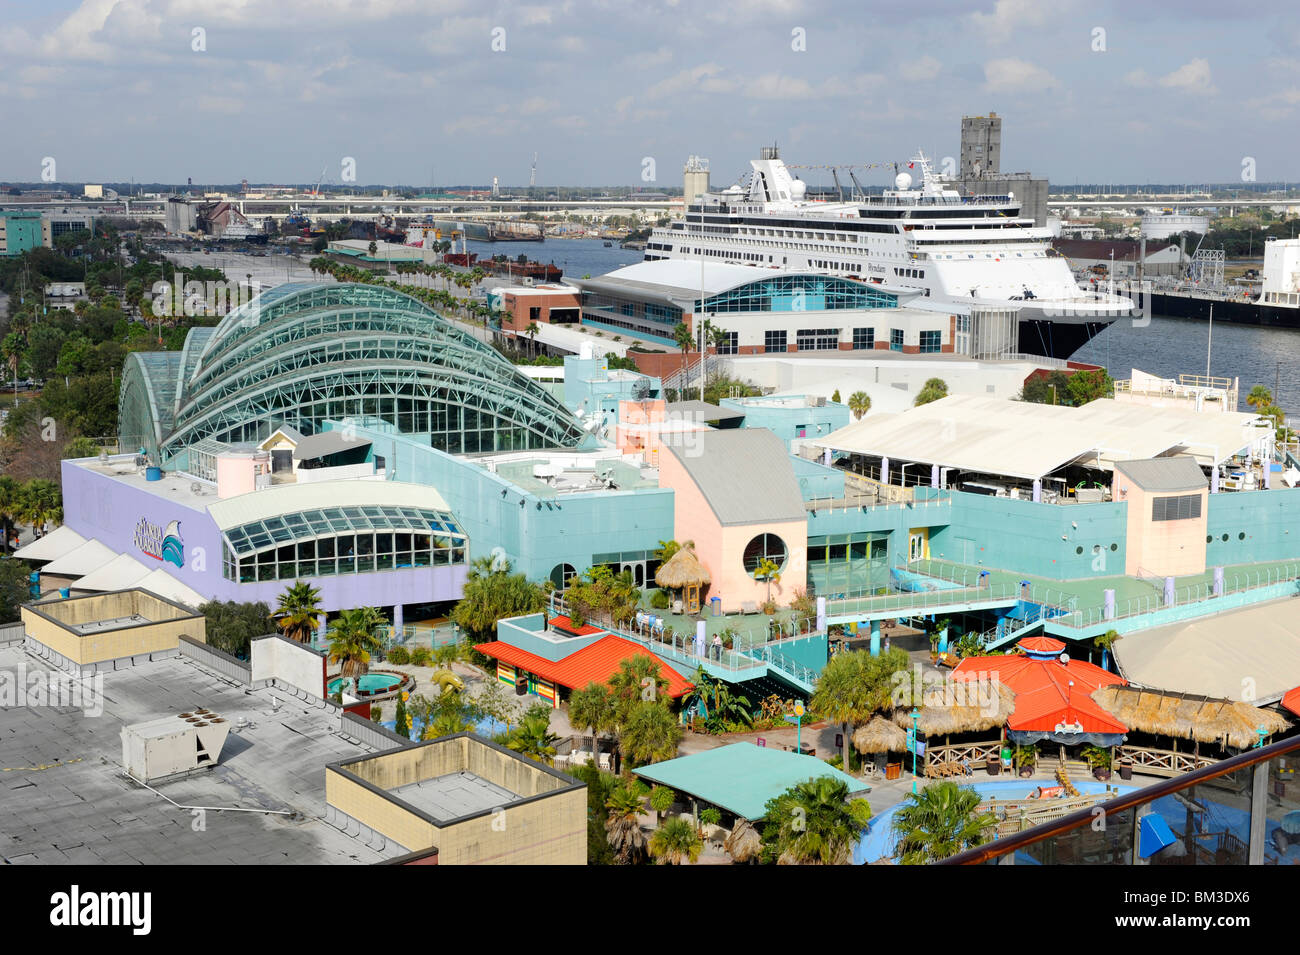 tampa bay florida aquarium downtown with cruise ship in background stock photo alamy https www alamy com stock photo tampa bay florida aquarium downtown with cruise ship in background 29580270 html